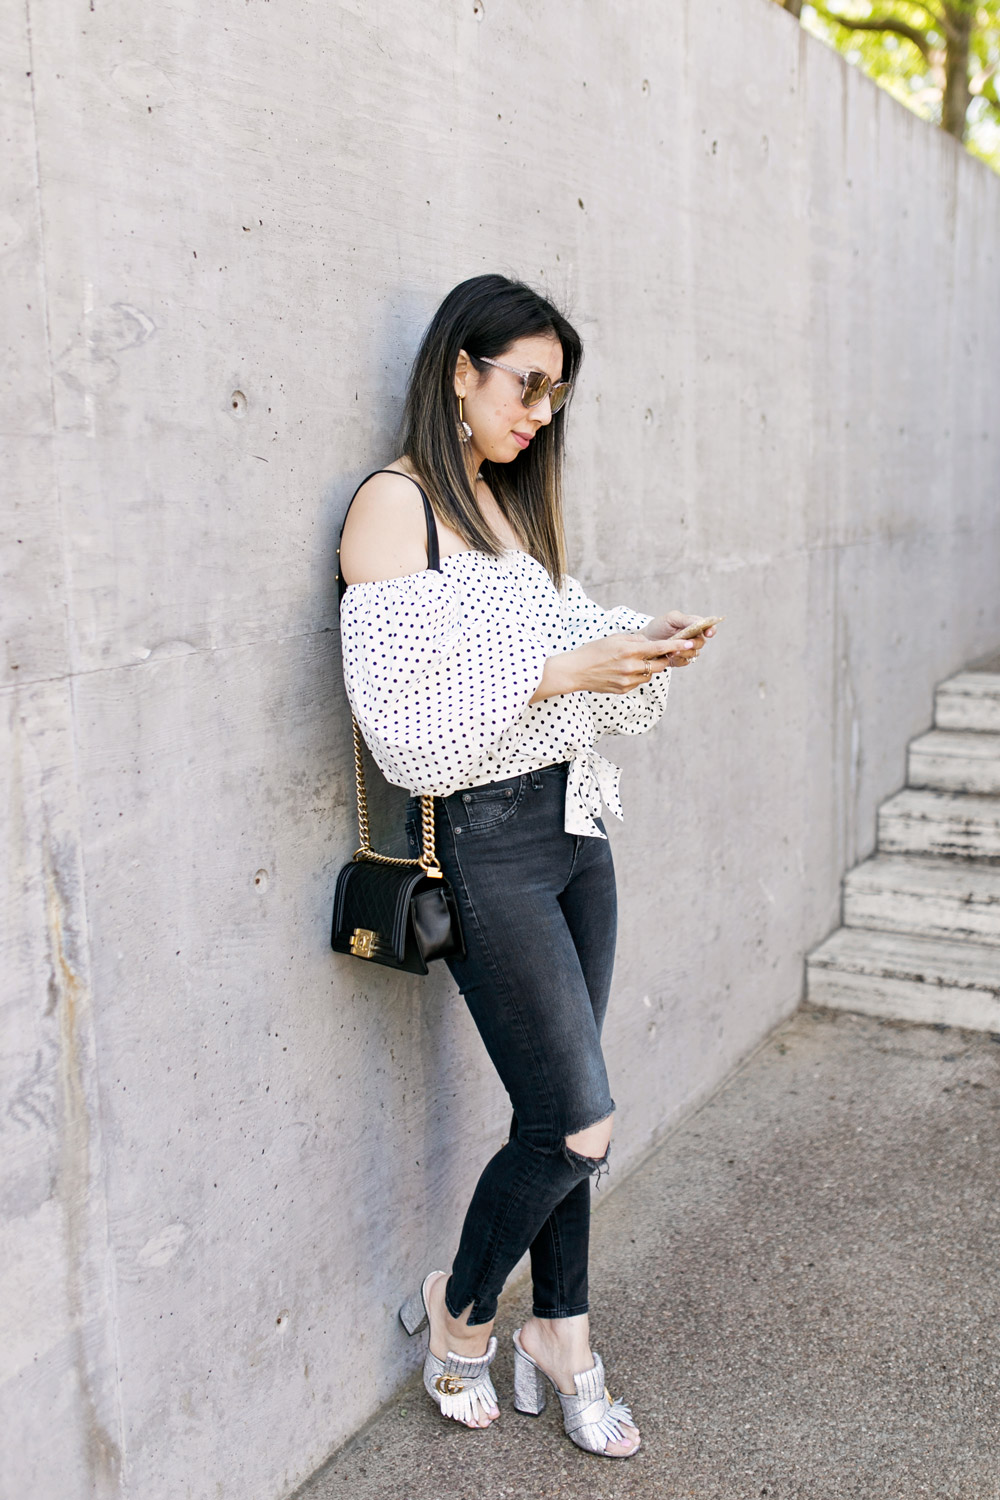 polka dot puff sleeve off the shoulder top with lele sadoughi plumeria drop earrings, rag and bone slit capri jeans in steel, gucci silver marmont mules and chanel boy bag